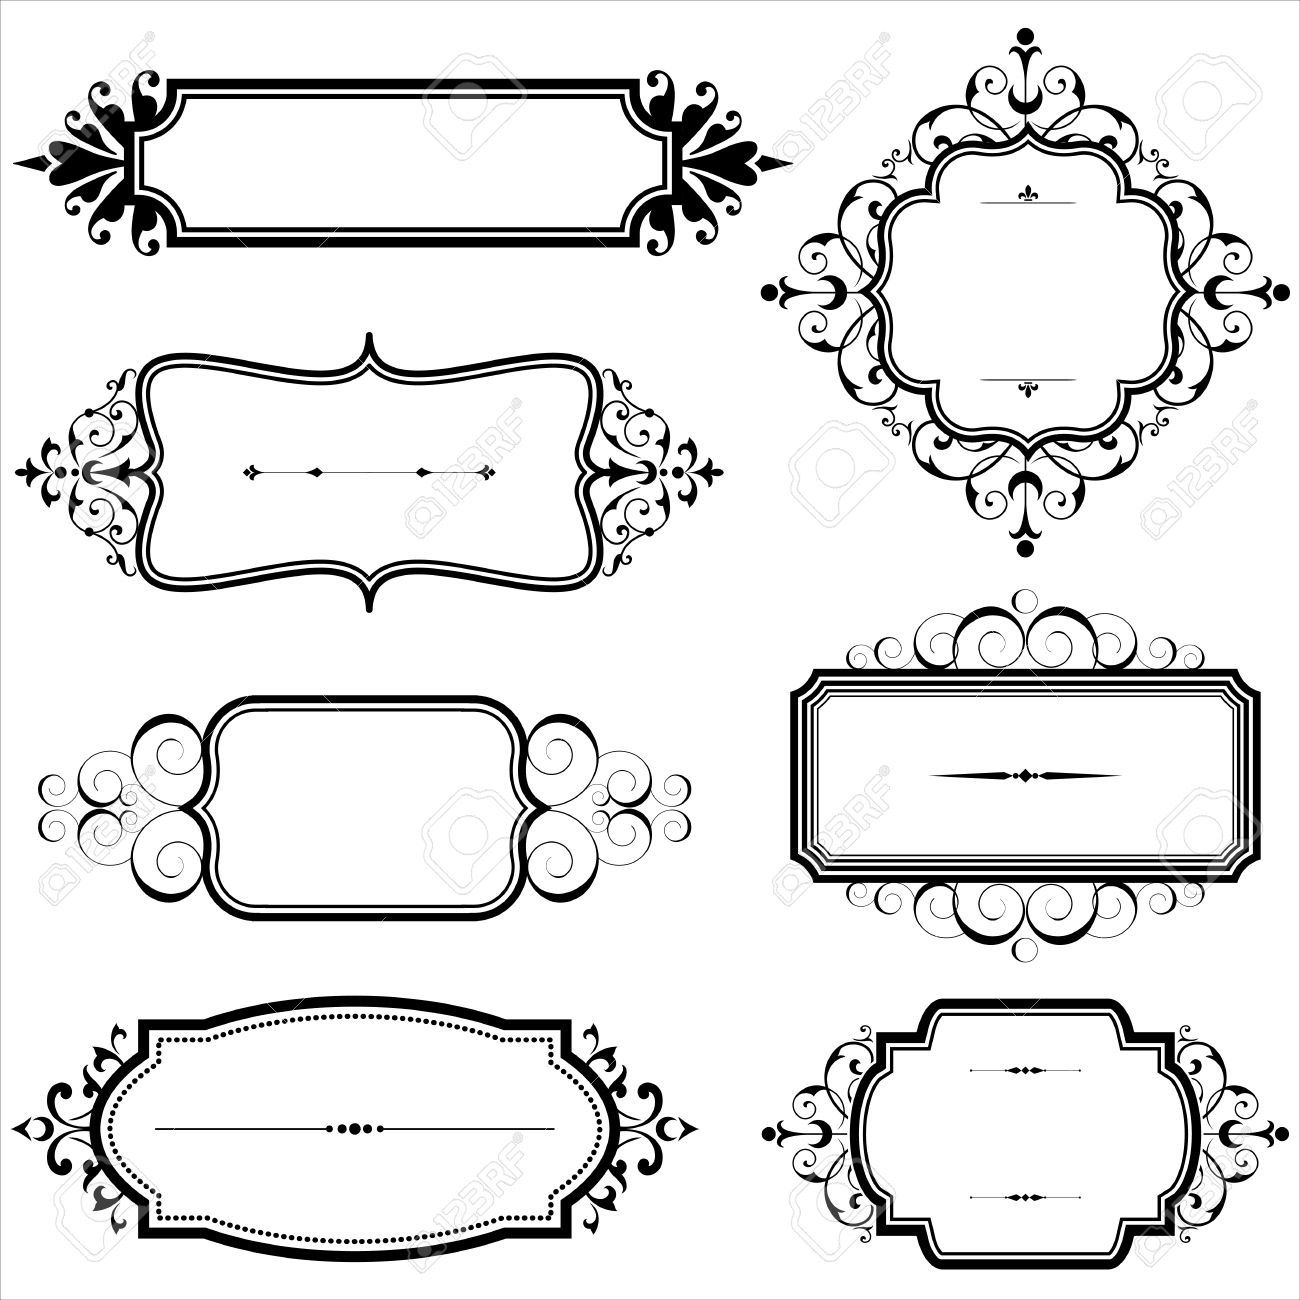 Vintage Frames With Scrolls - Set Of Vintage Frames With Scroll ...